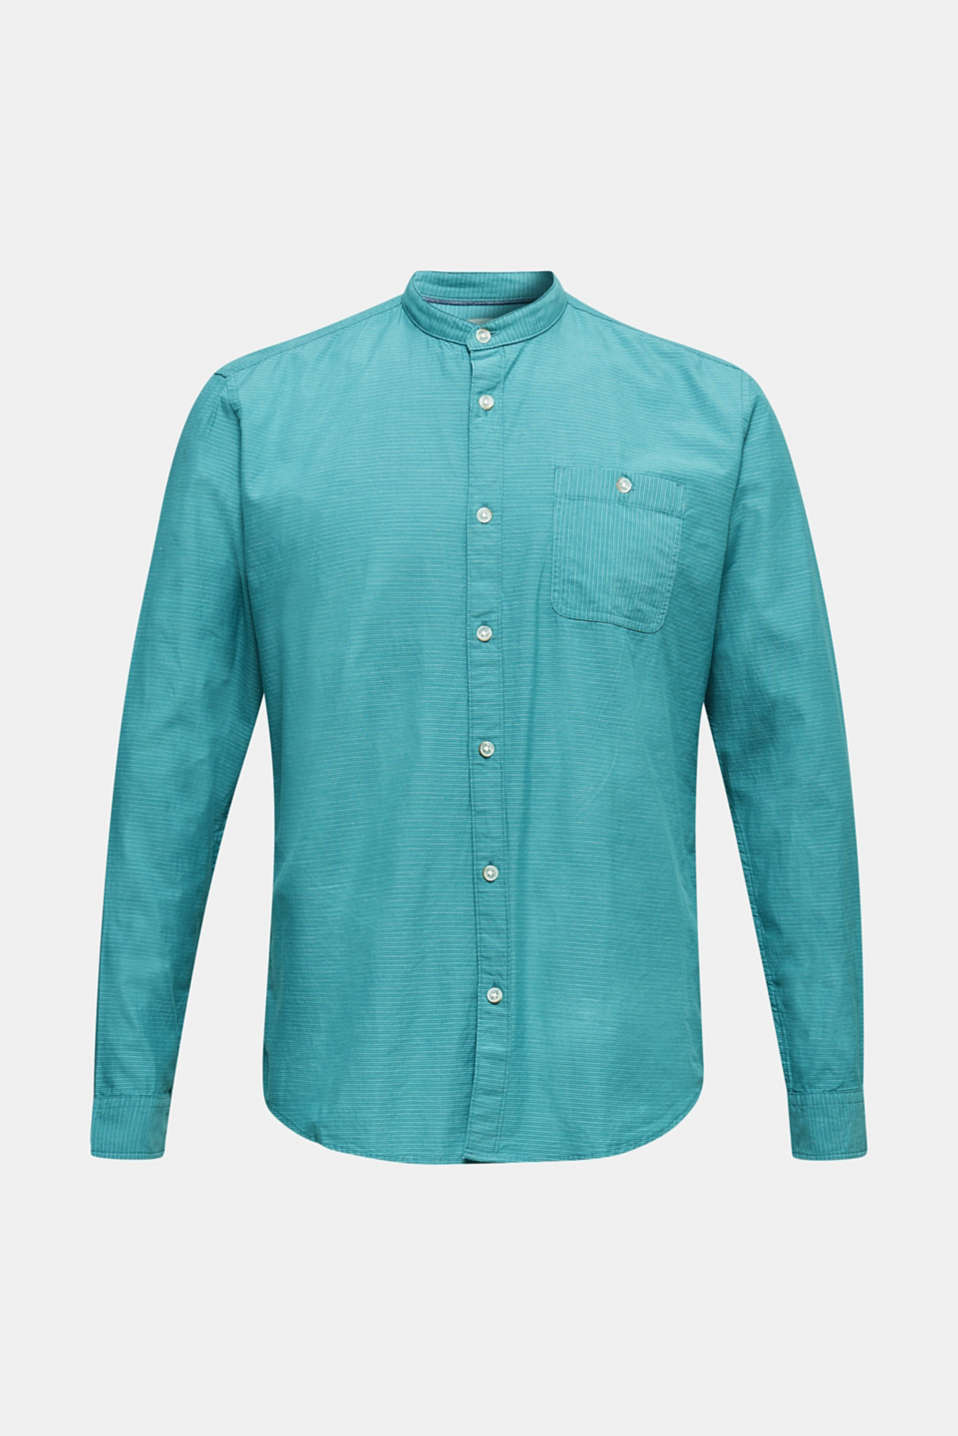 Shirt with band collar, 100% cotton, TEAL GREEN 3, detail image number 5